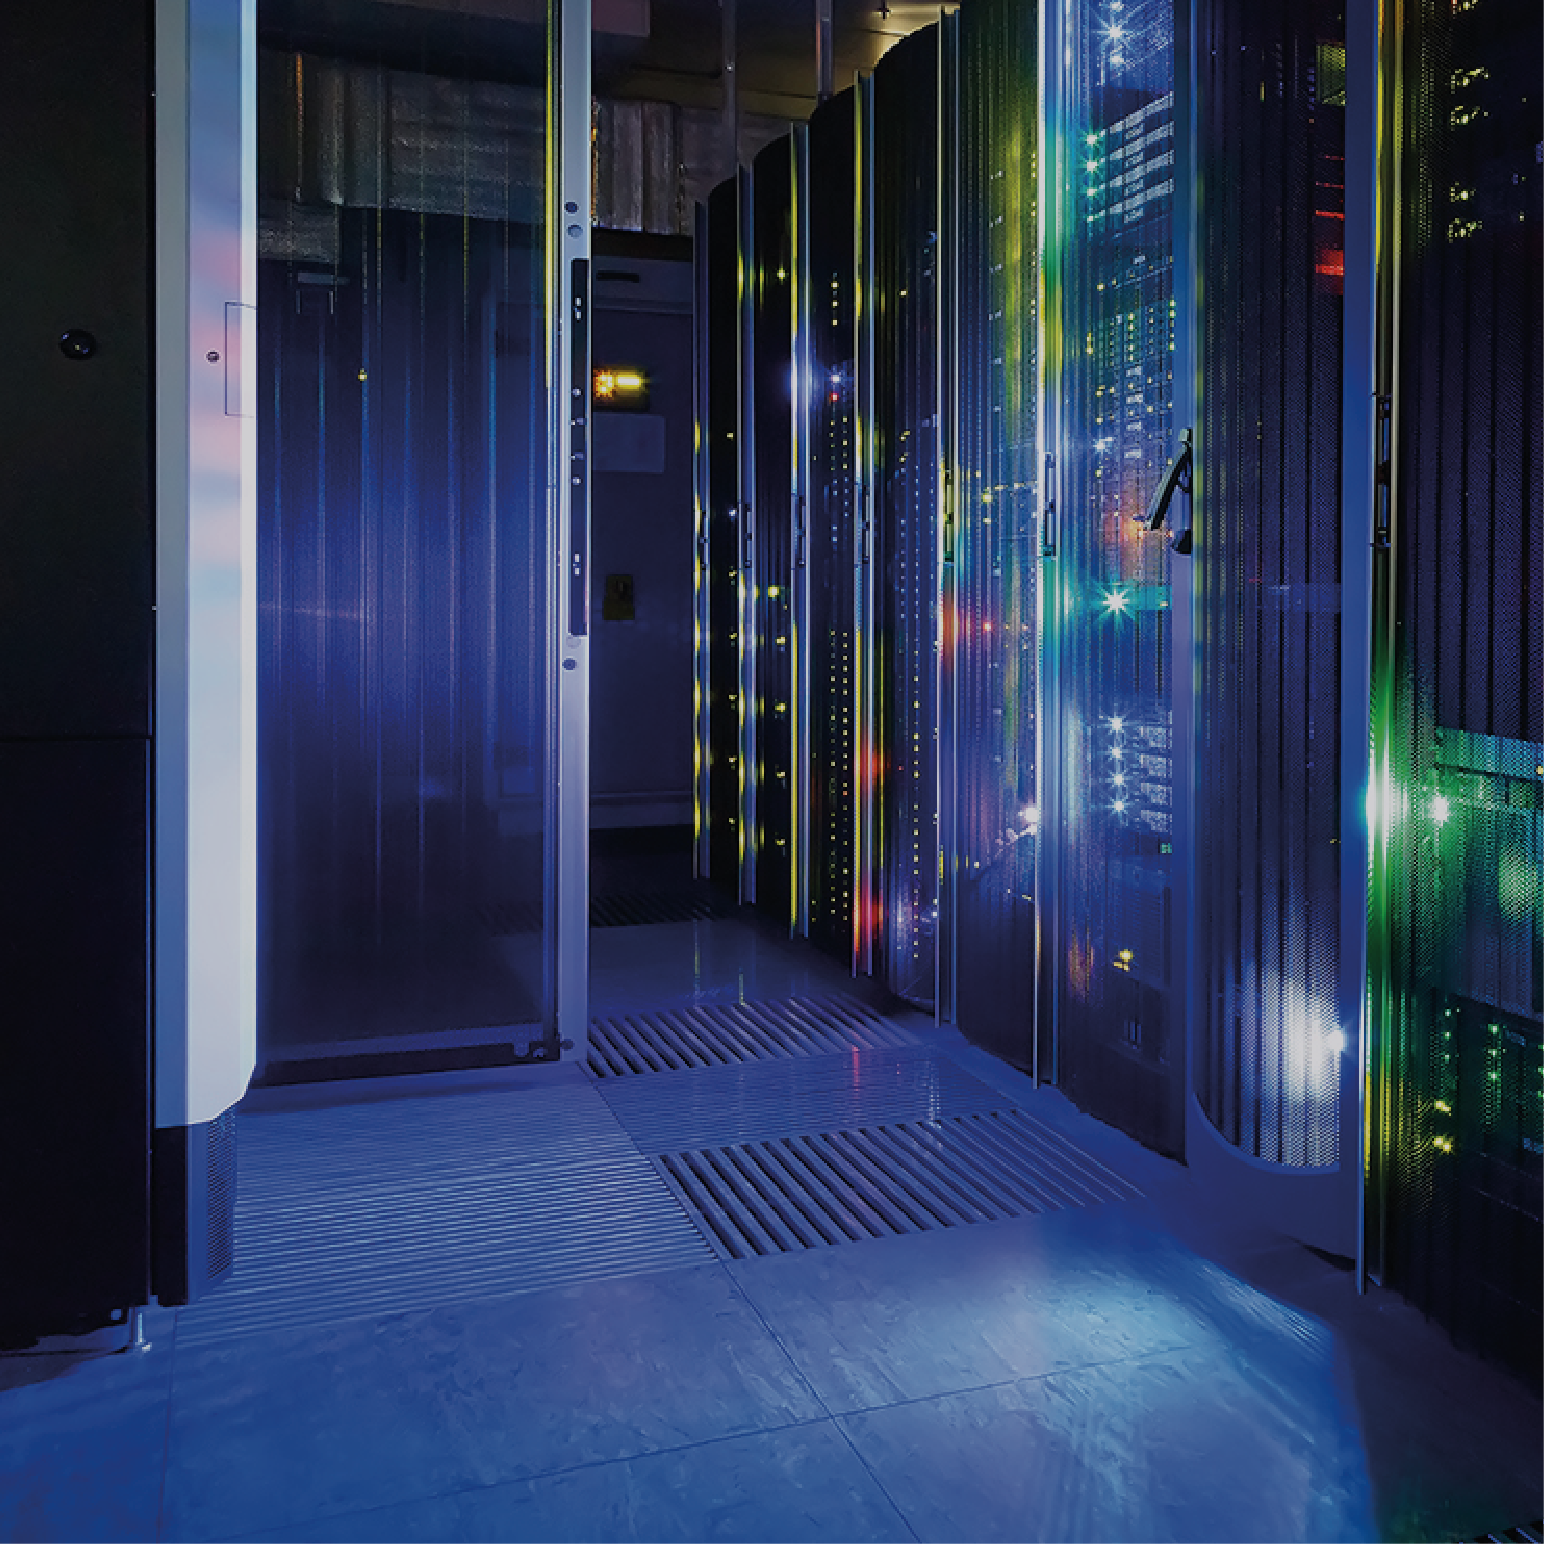 Cloud & Co-location - Datacentre UK offers cloud solutions and co-location services tailored to your organisationLEARN MORE...